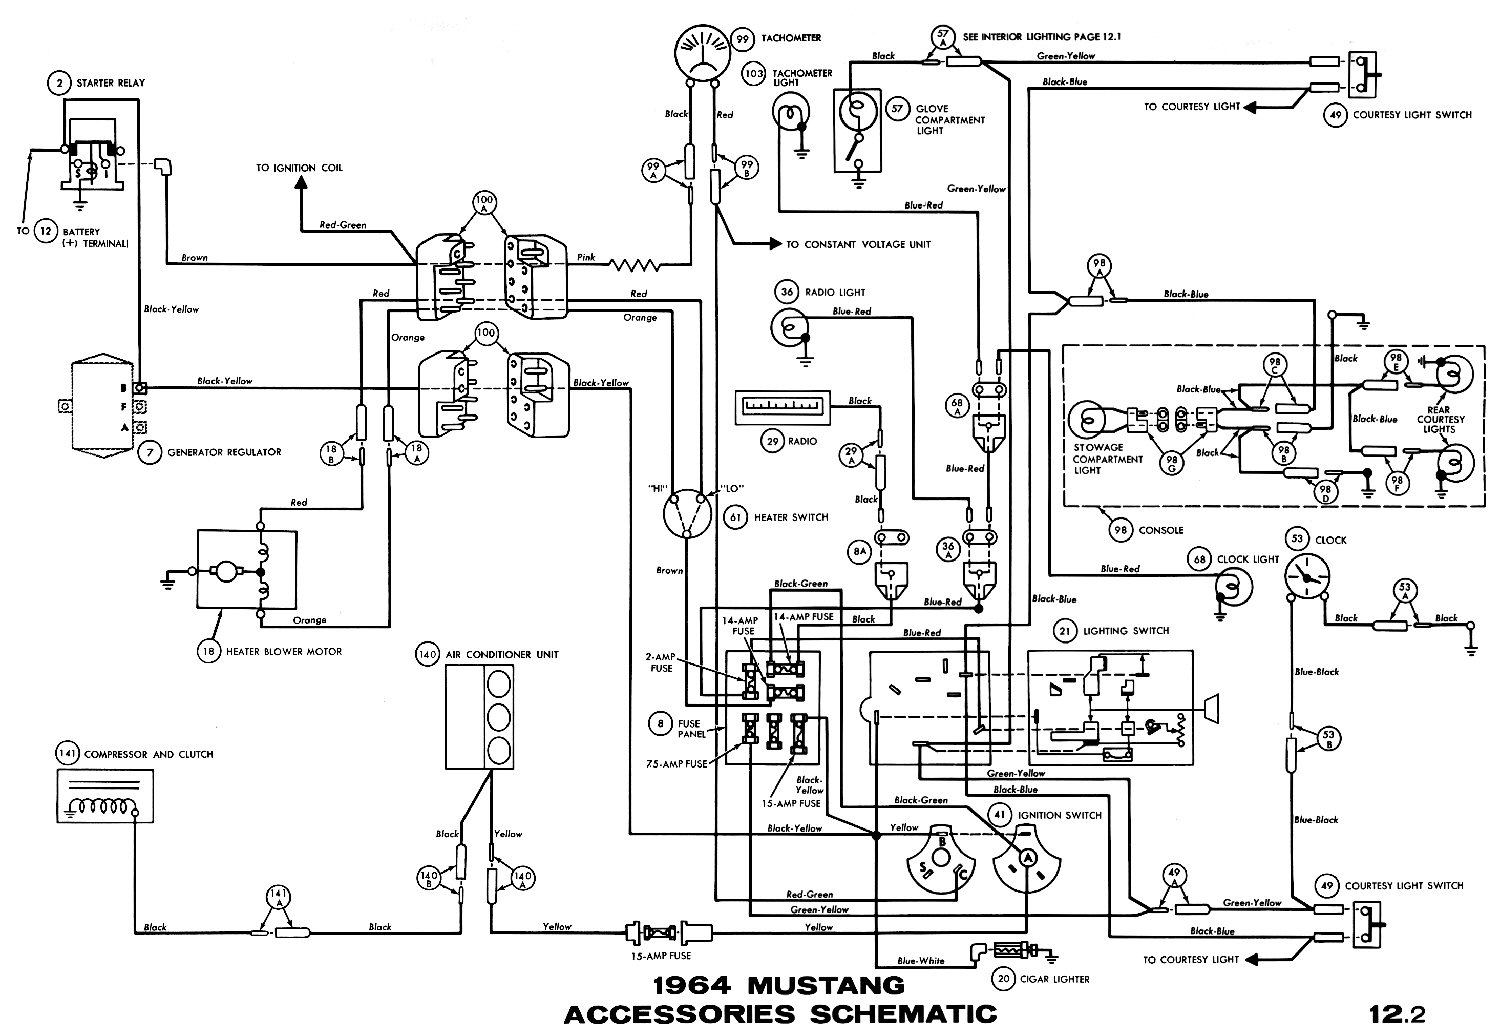 1964m 1964 mustang wiring diagrams average joe restoration 1964 ford wiring diagram at nearapp.co